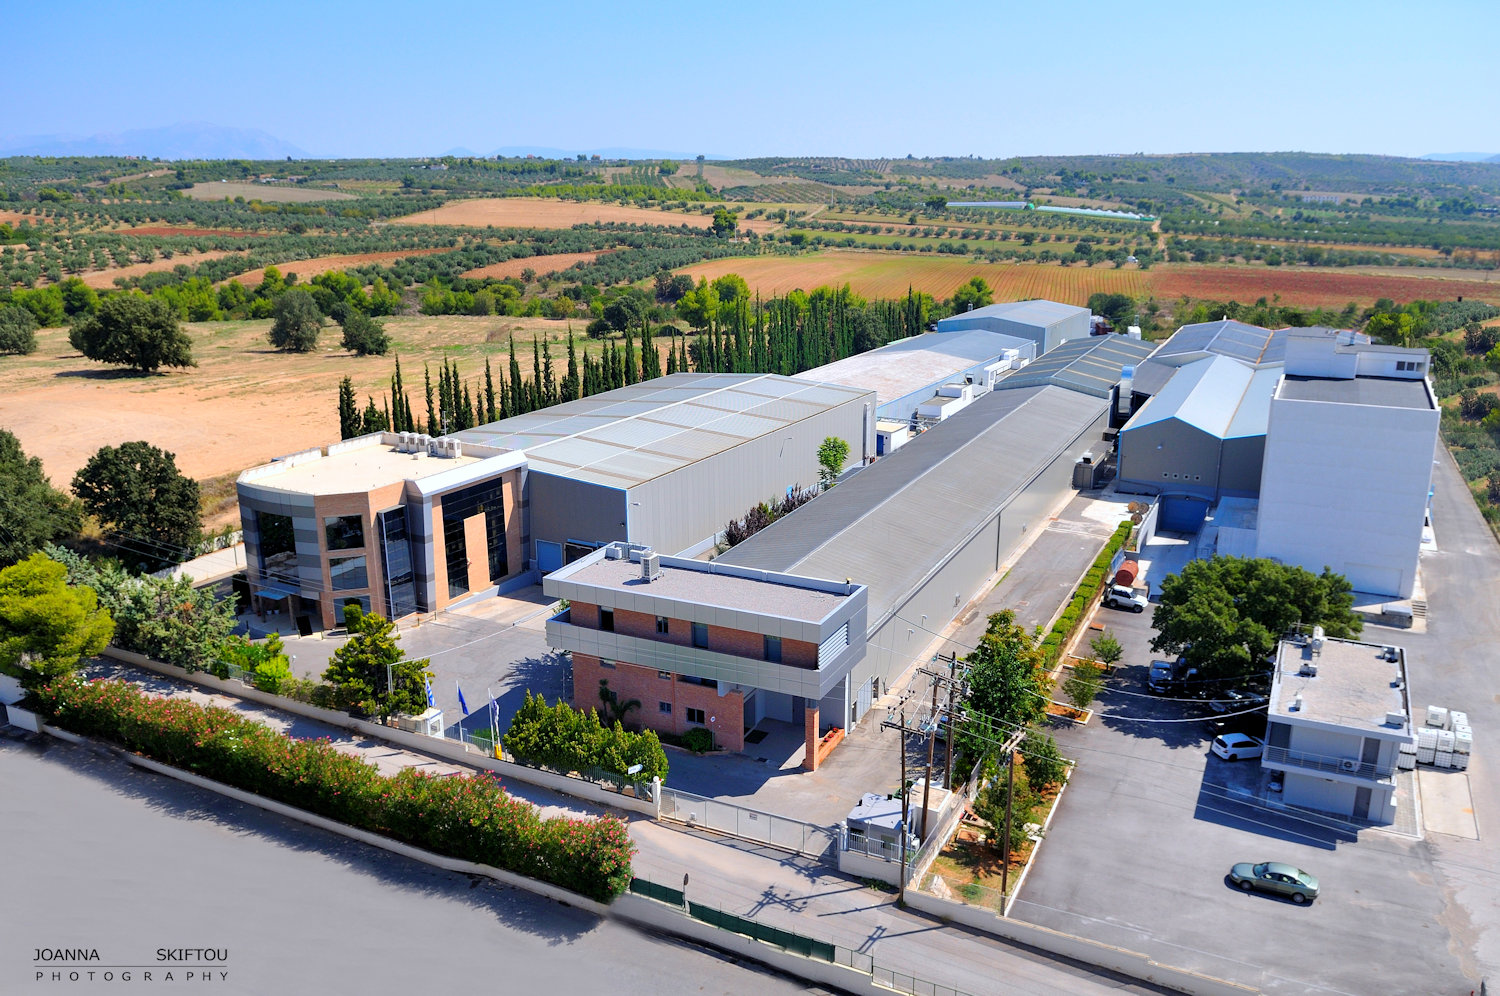 Aerial photography by Joanna Skiftou, Septona industrial site.